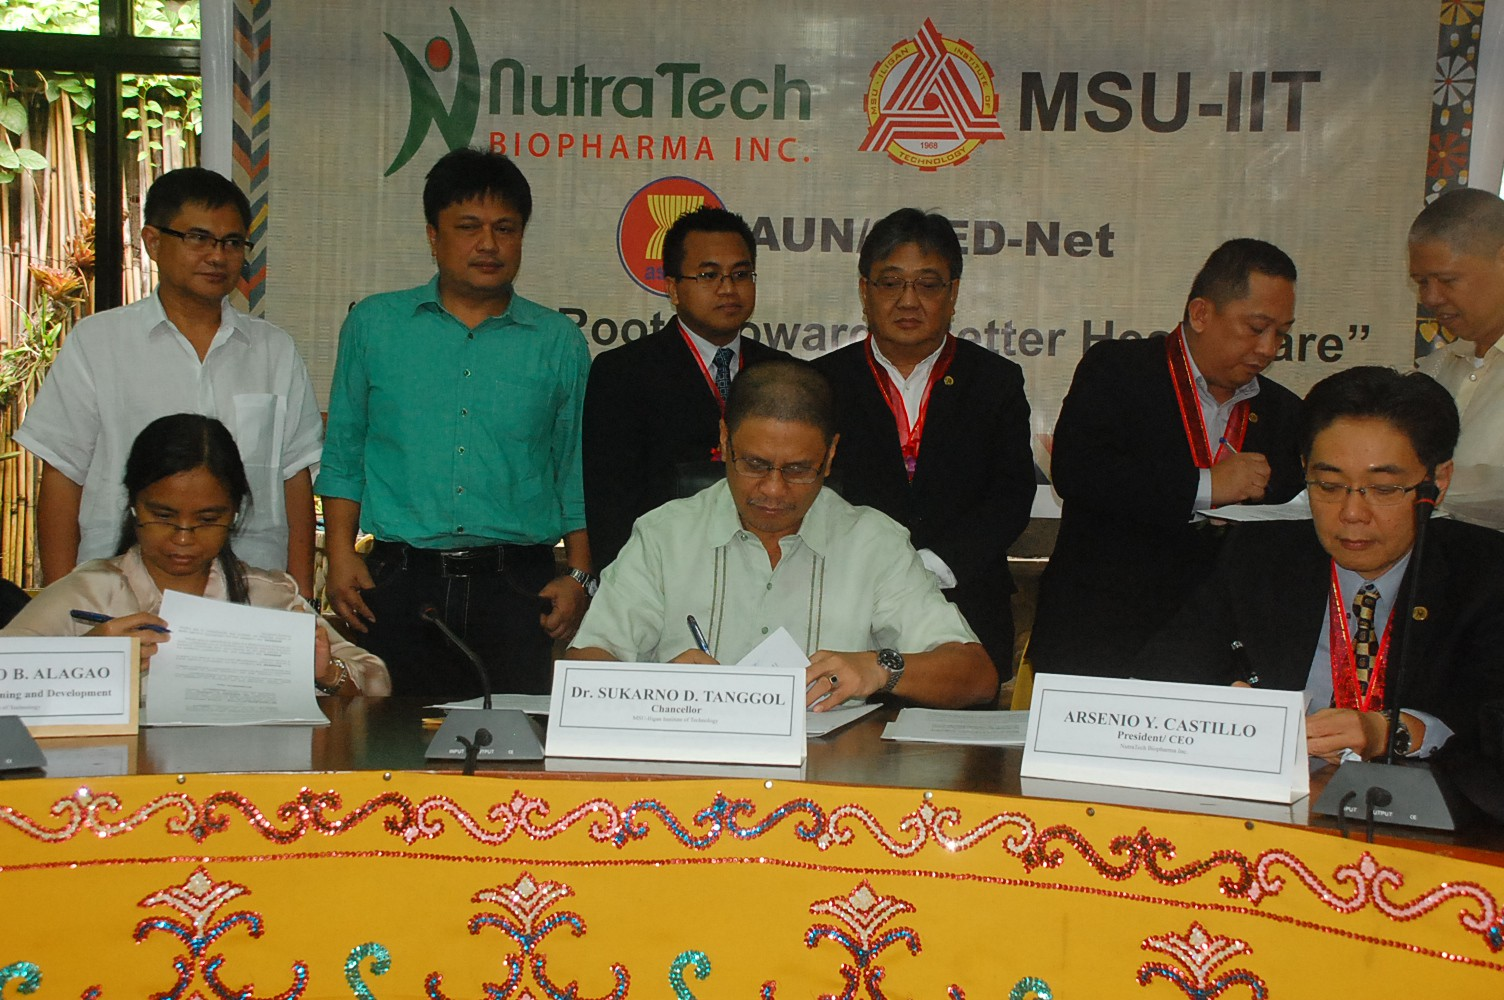 Nutra Tech Biopharma, Inc. and ASEAN University Network Member MSU-IIT Strengthens Links with Alliance